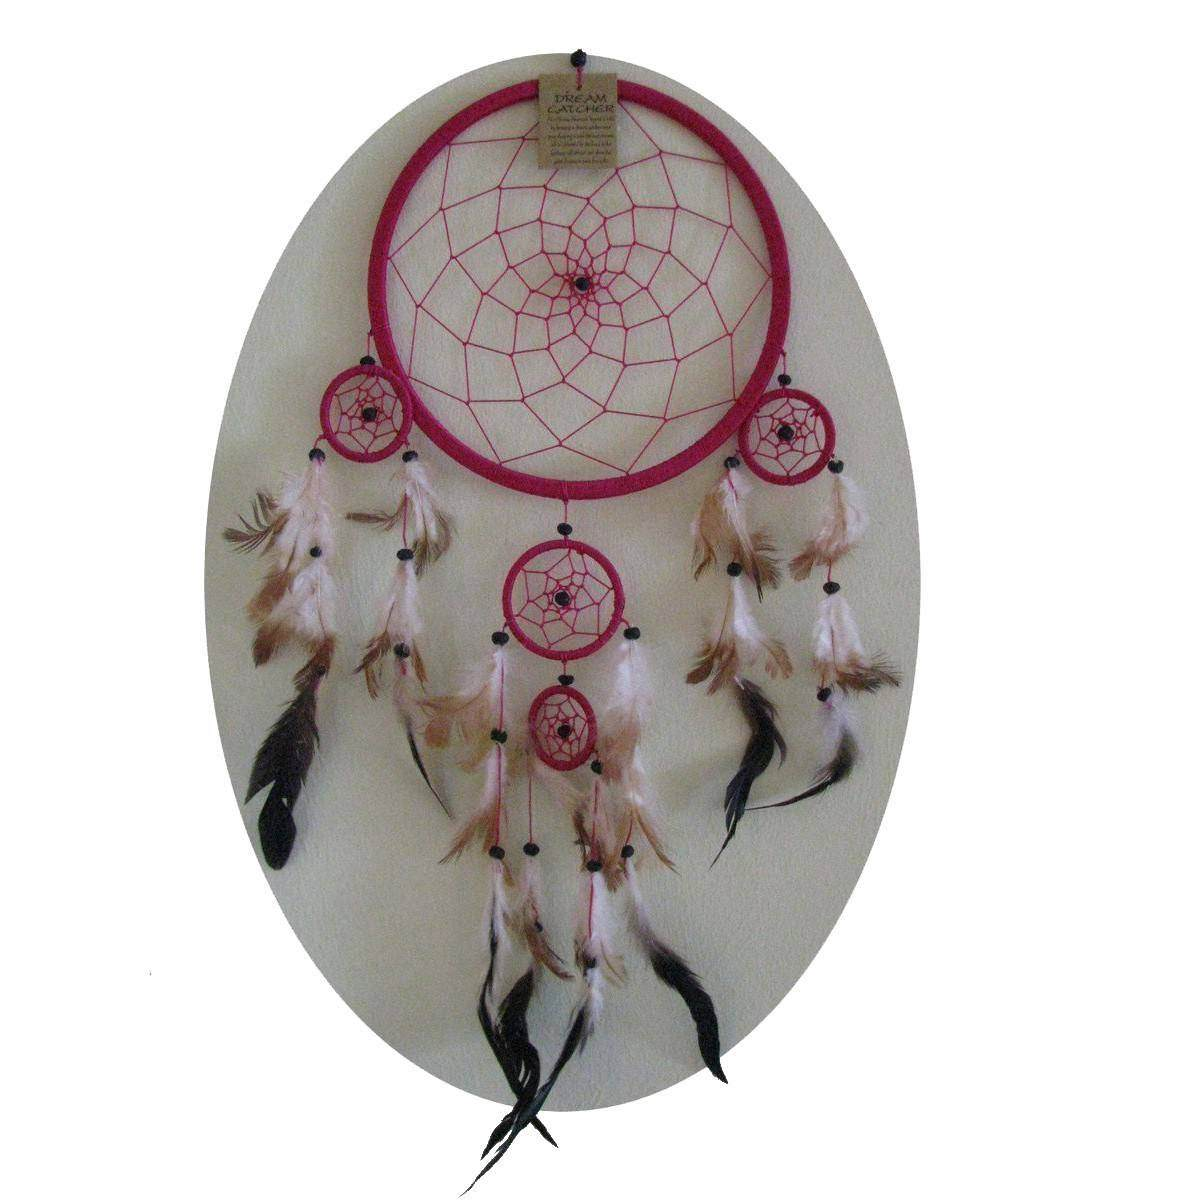 traumf nger dreamcatcher federn deko geschenk windspiel 11 cm. Black Bedroom Furniture Sets. Home Design Ideas